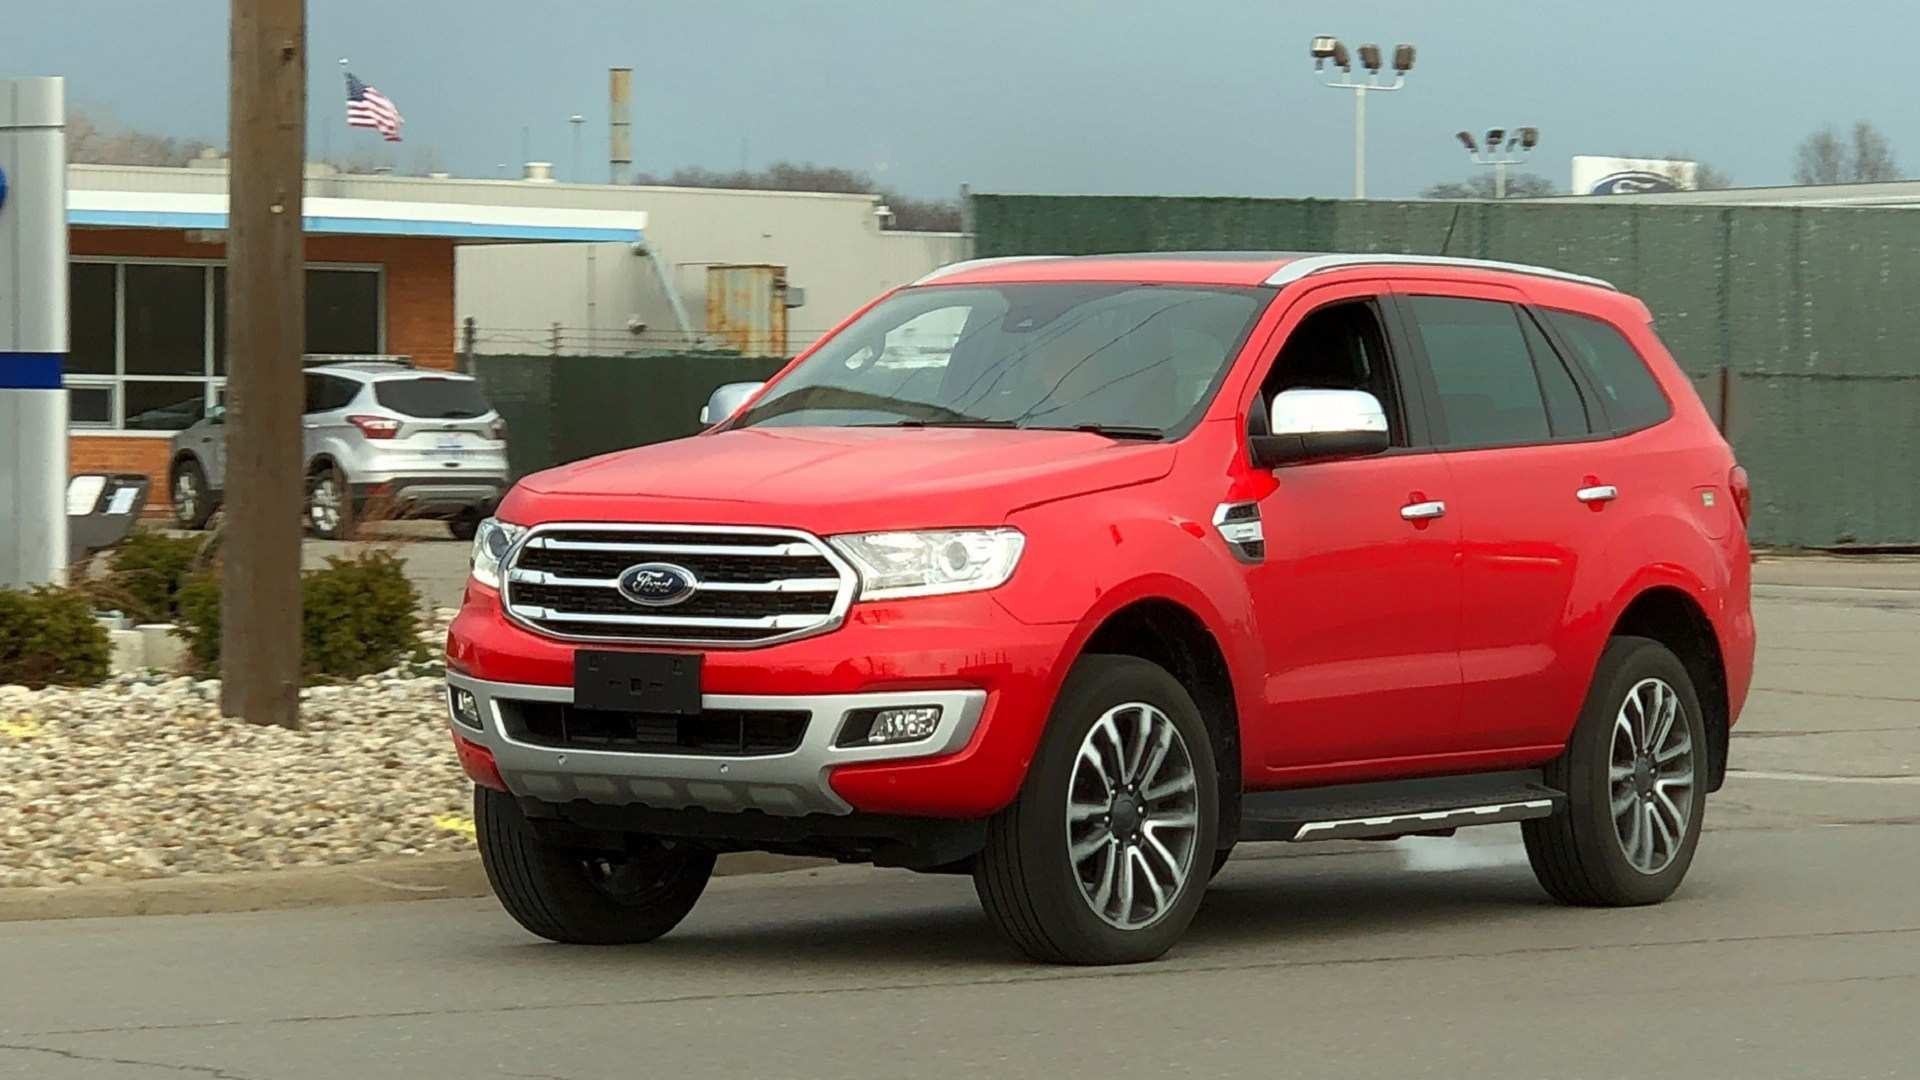 99 The 2020 Ford Everest Price And Release Date